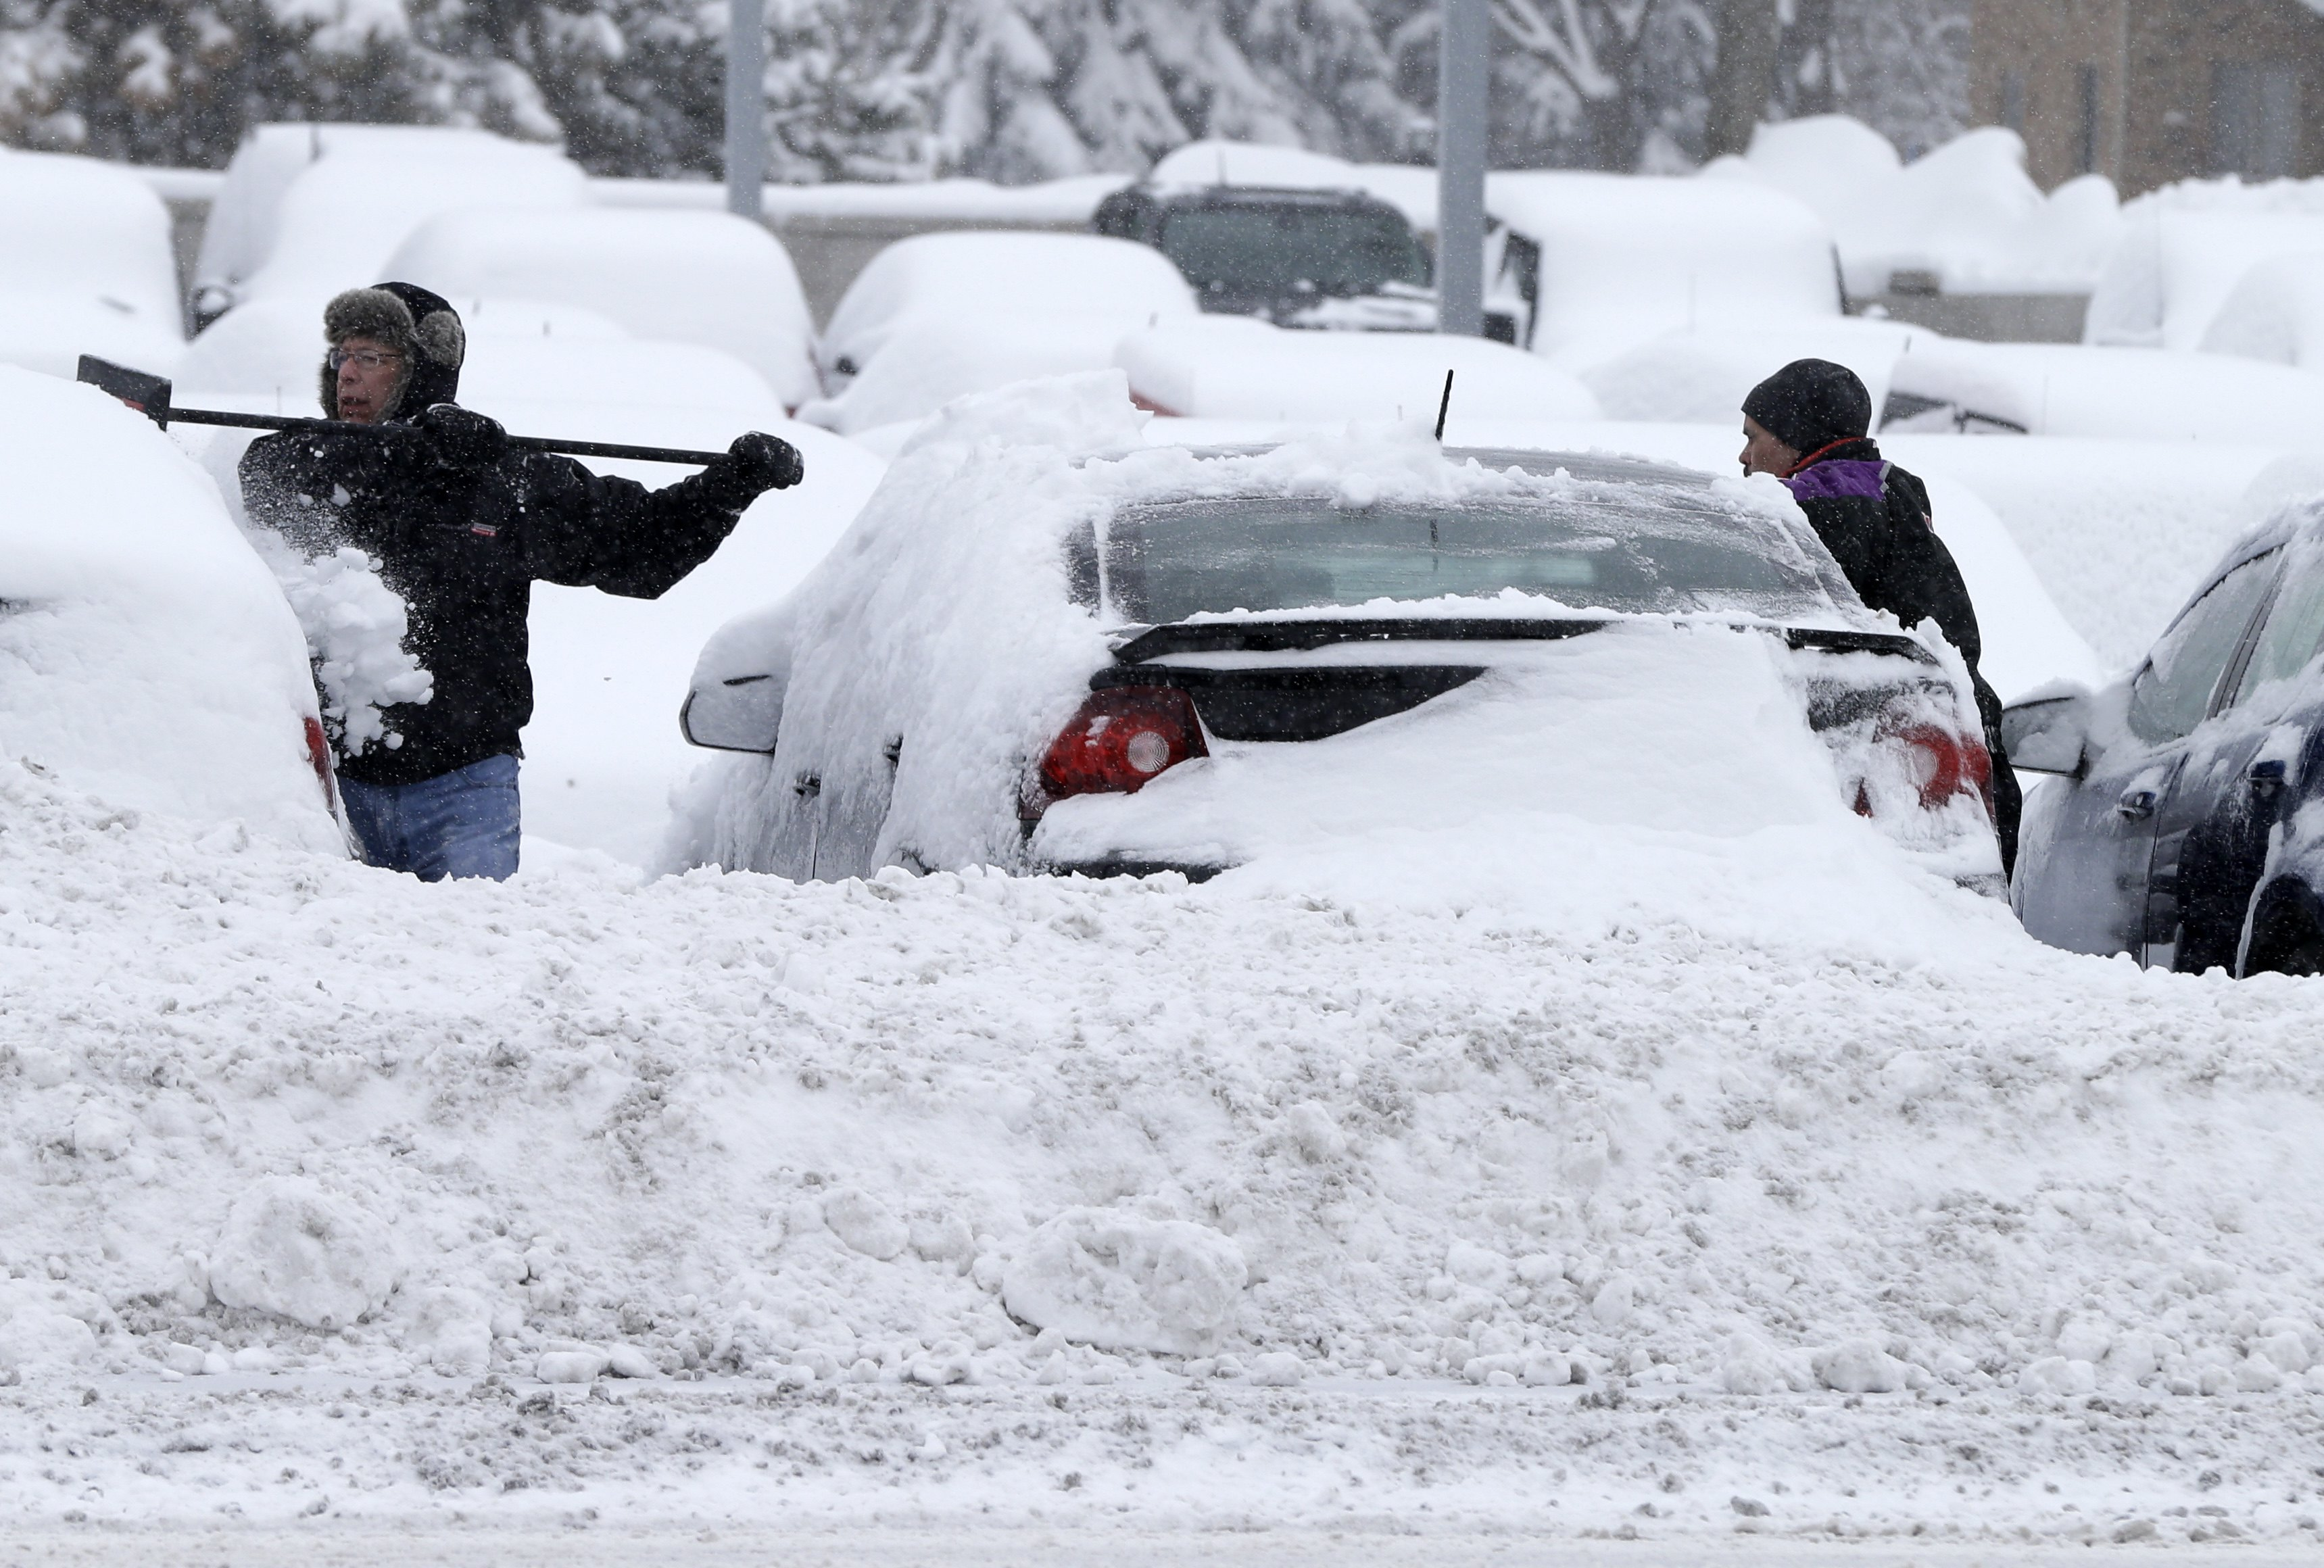 Winter Storm: Winter Clings To Its Final Weeks As Snowstorm Rolls